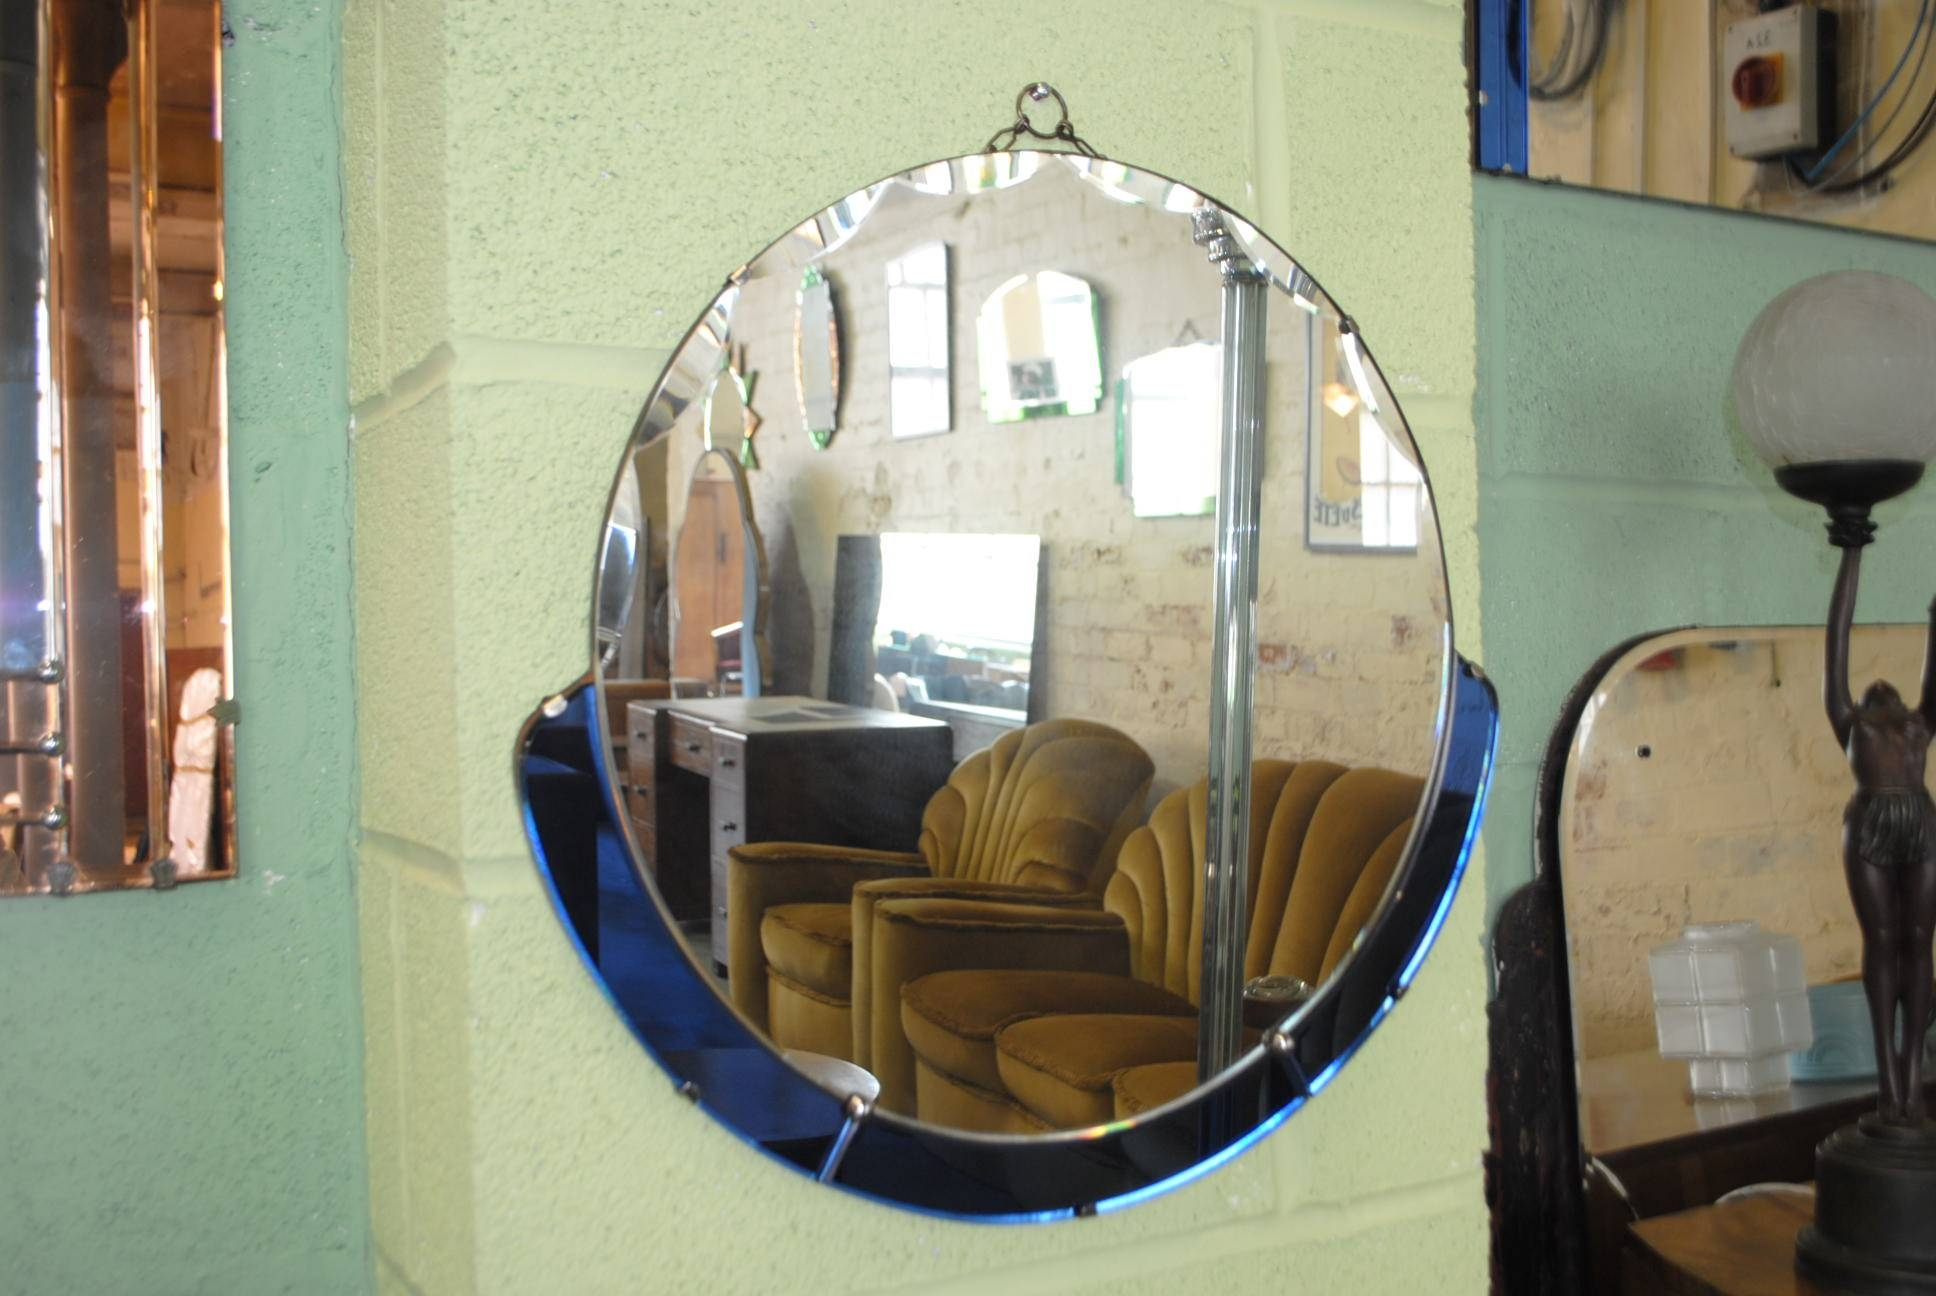 Original Circular And Blue Art Deco Mirror || Cloud 9, Art Deco For Original Art Deco Mirrors (View 25 of 25)